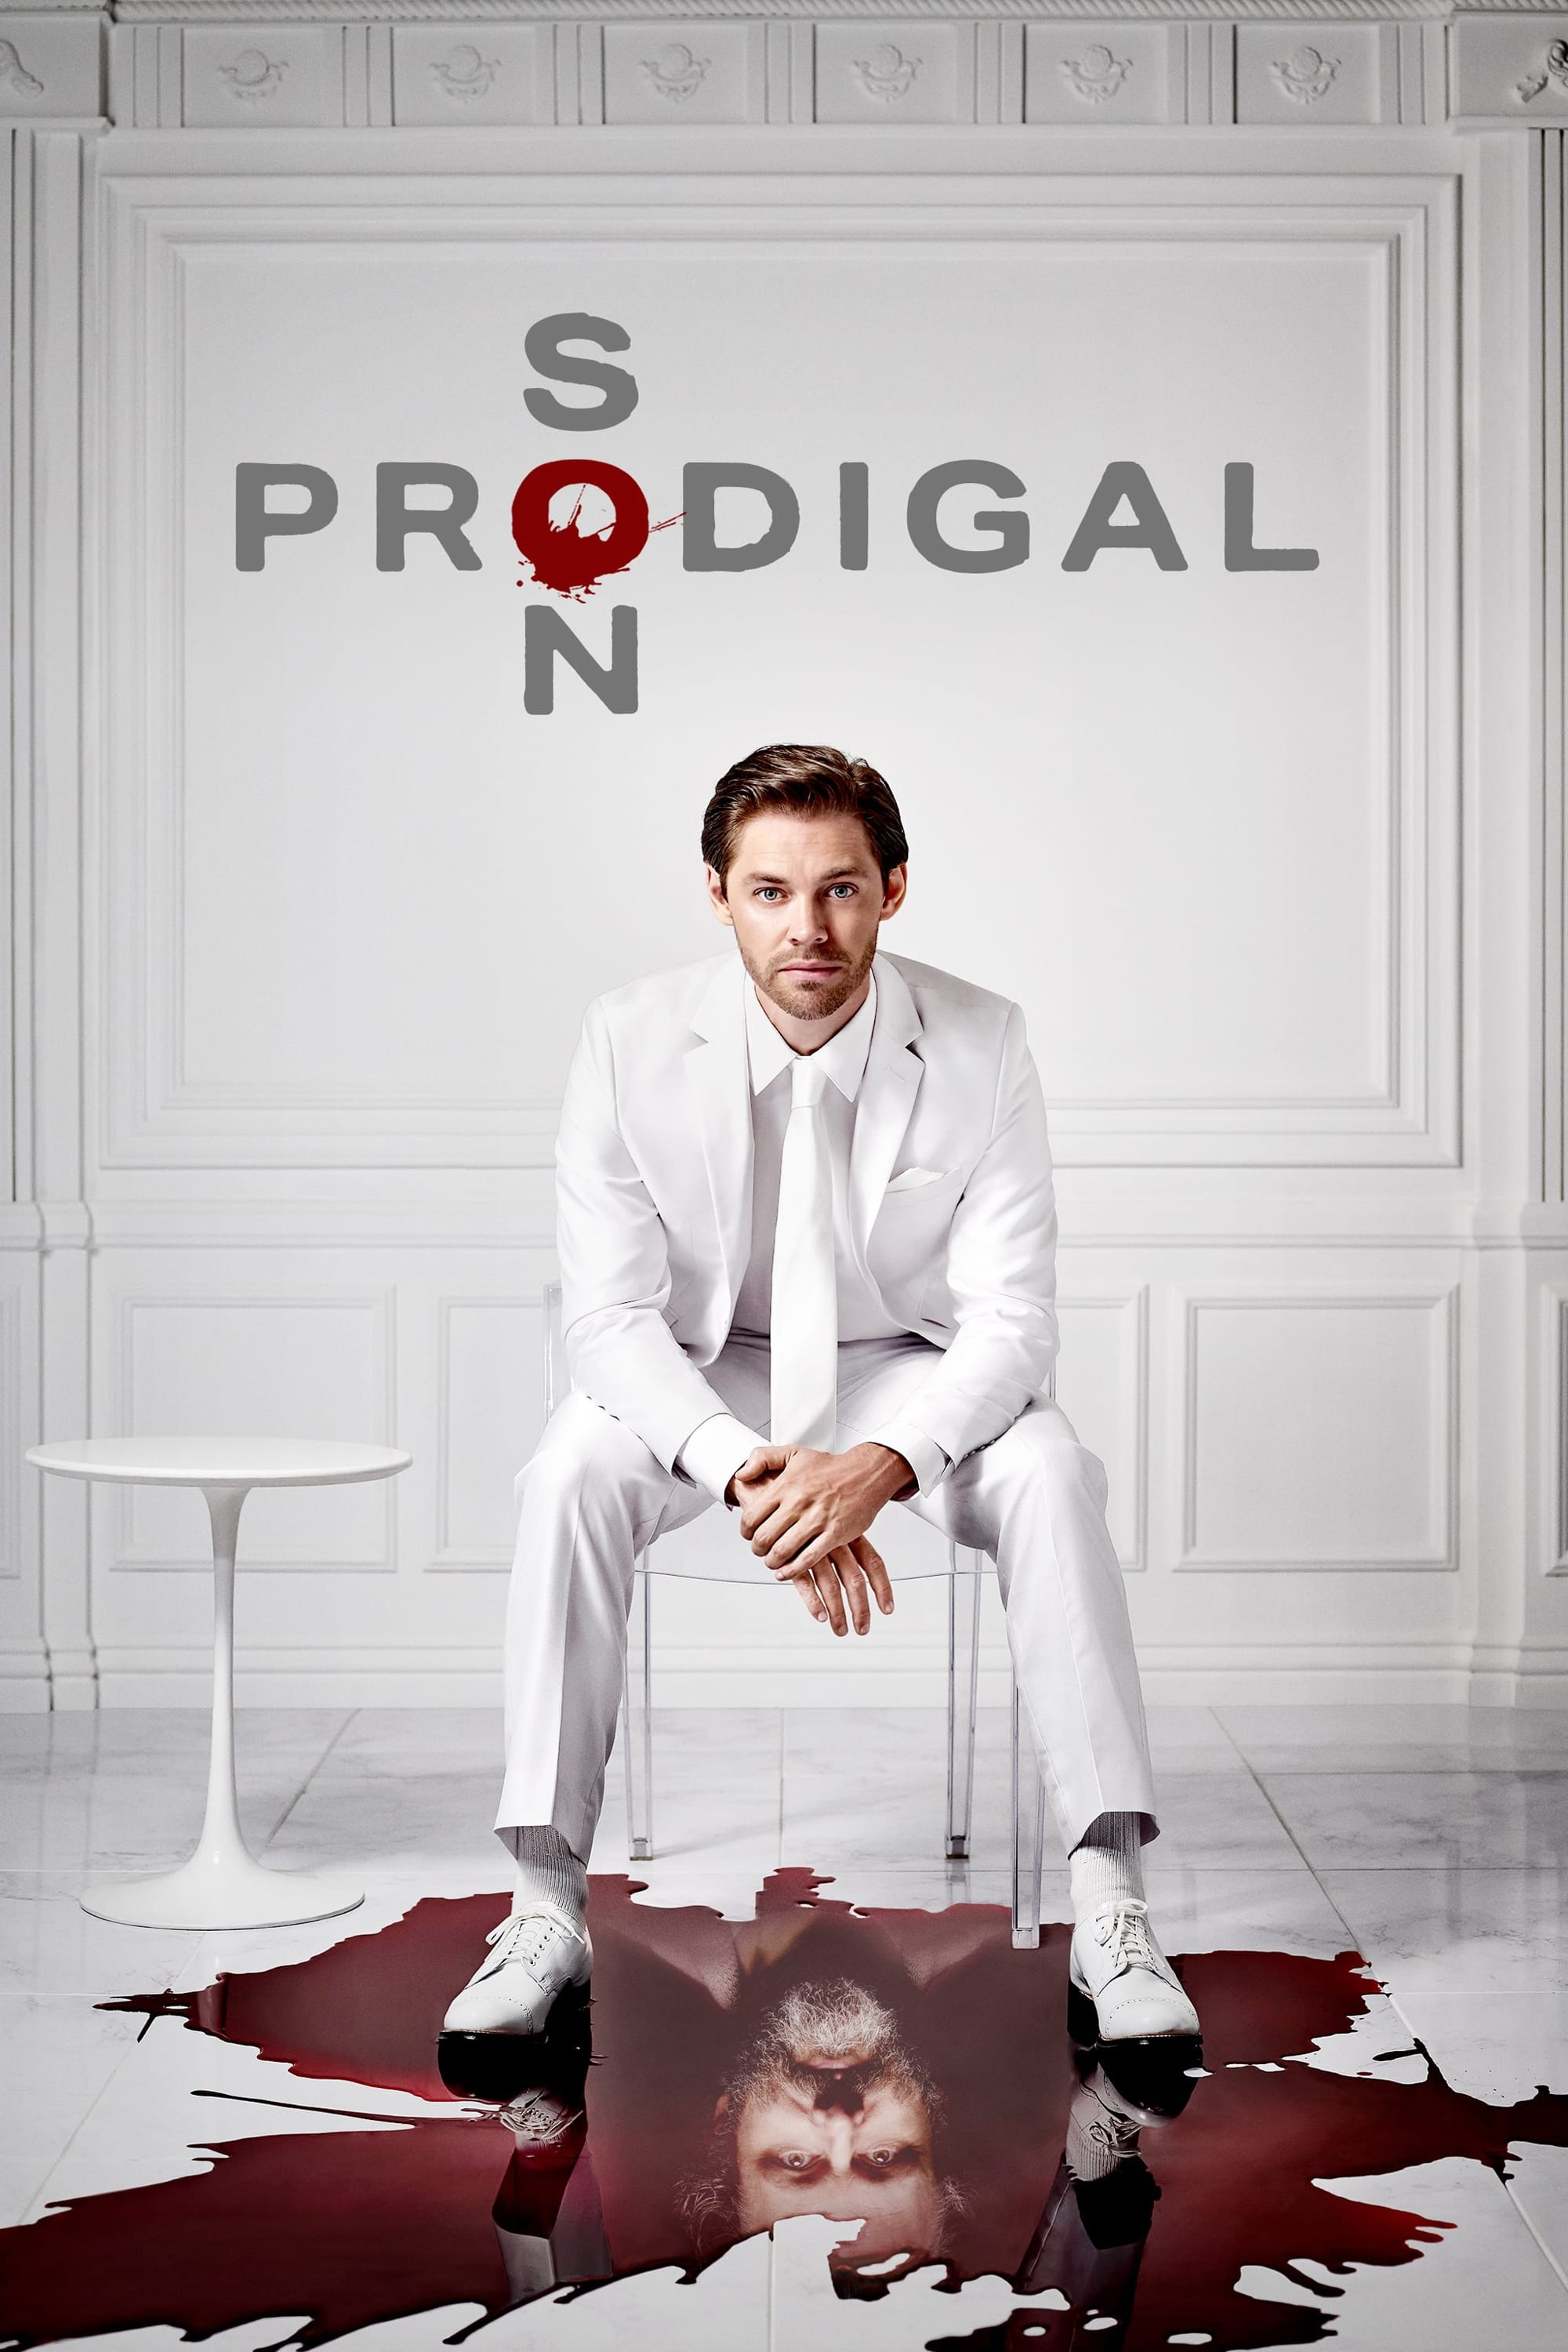 Prodigal Son TV Shows About Murder Investigation